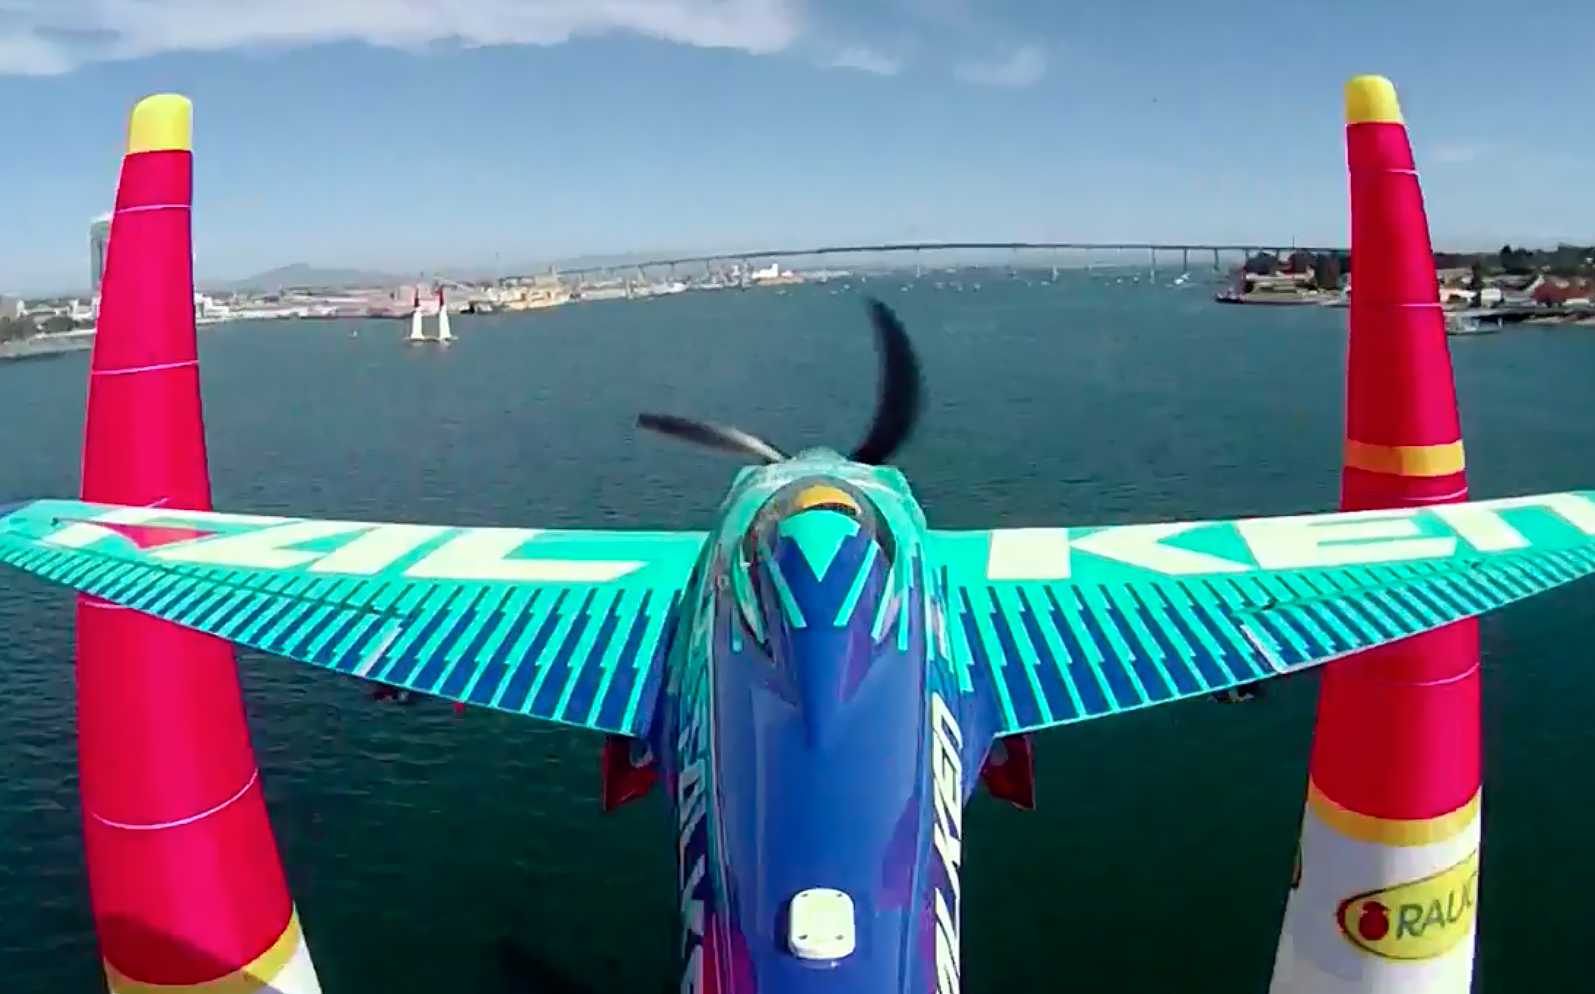 Yoshihide Muroya of Japan performs during the Red Bull Air Race World Championship in San Diego, April 16. Photo courtesy of Red Bull Content Pool